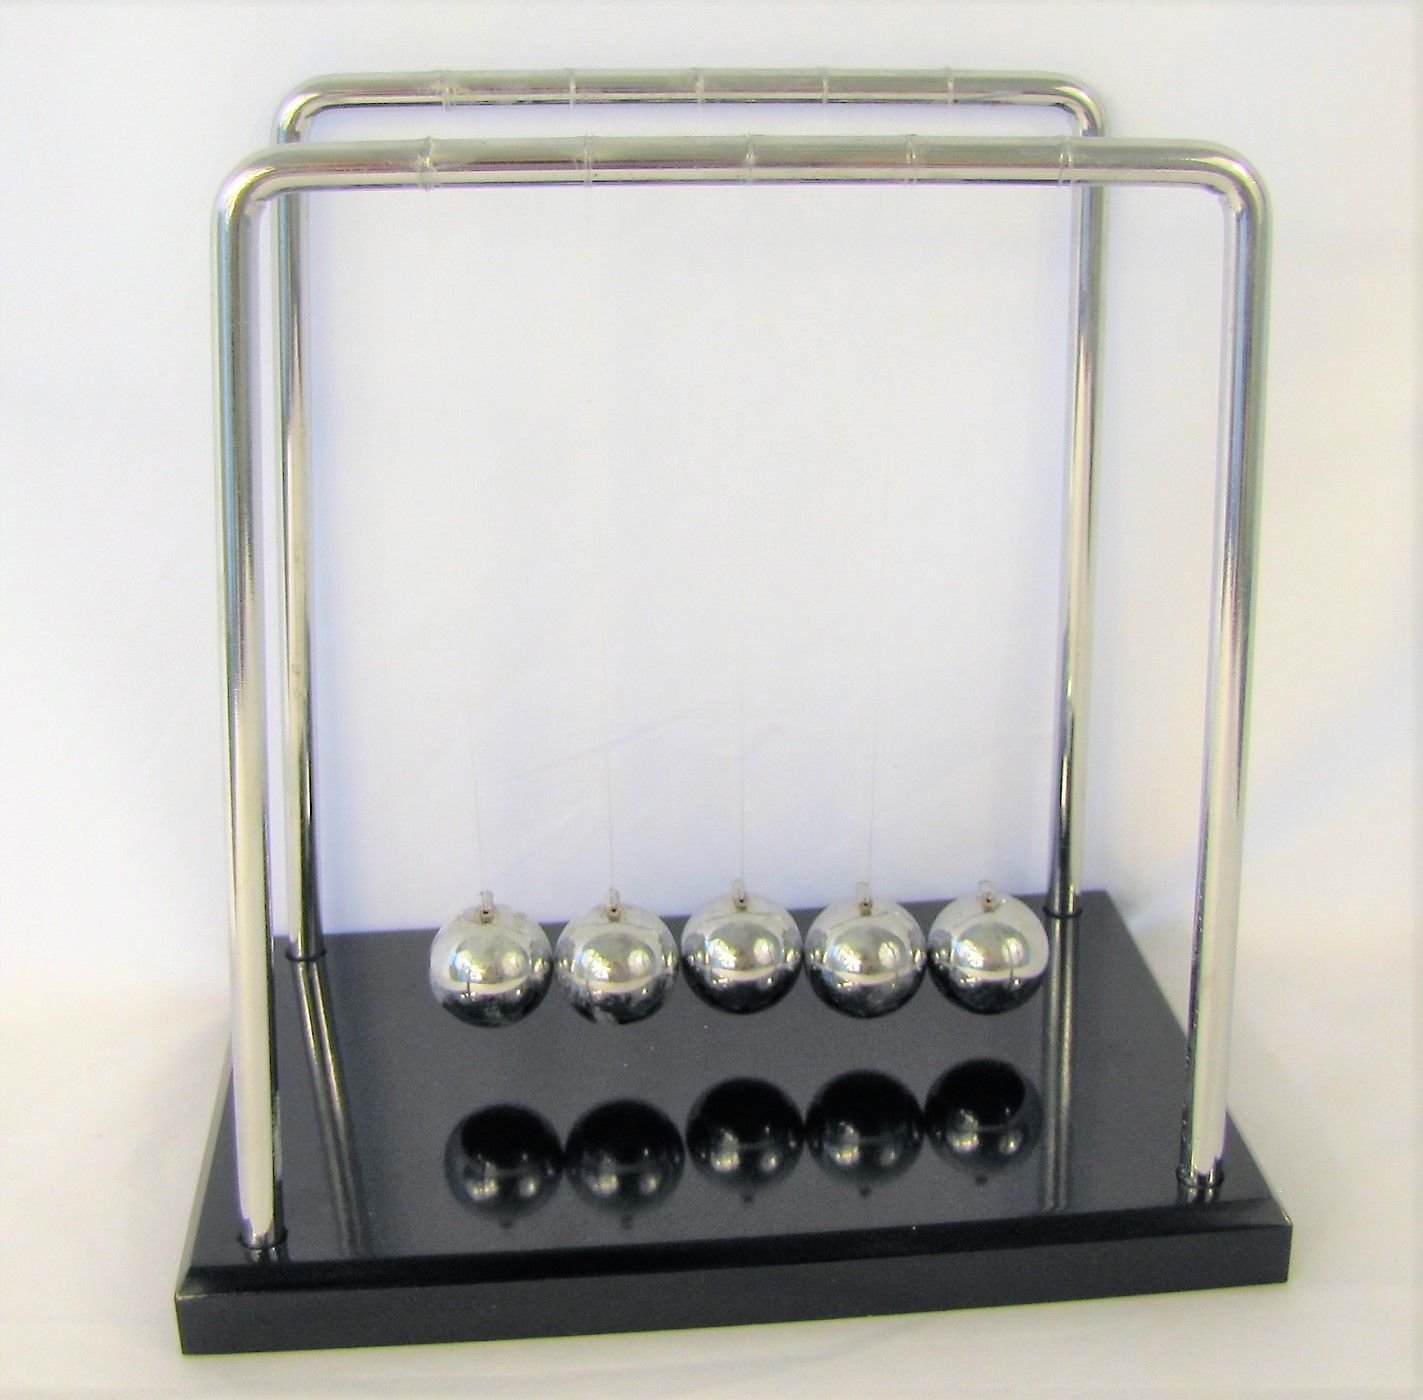 Newton's Cradle, Large Balance Ball Pendulum, Demonstrate Laws of Motion, Classical Physics Desktop Display, 7.25 Inch Height